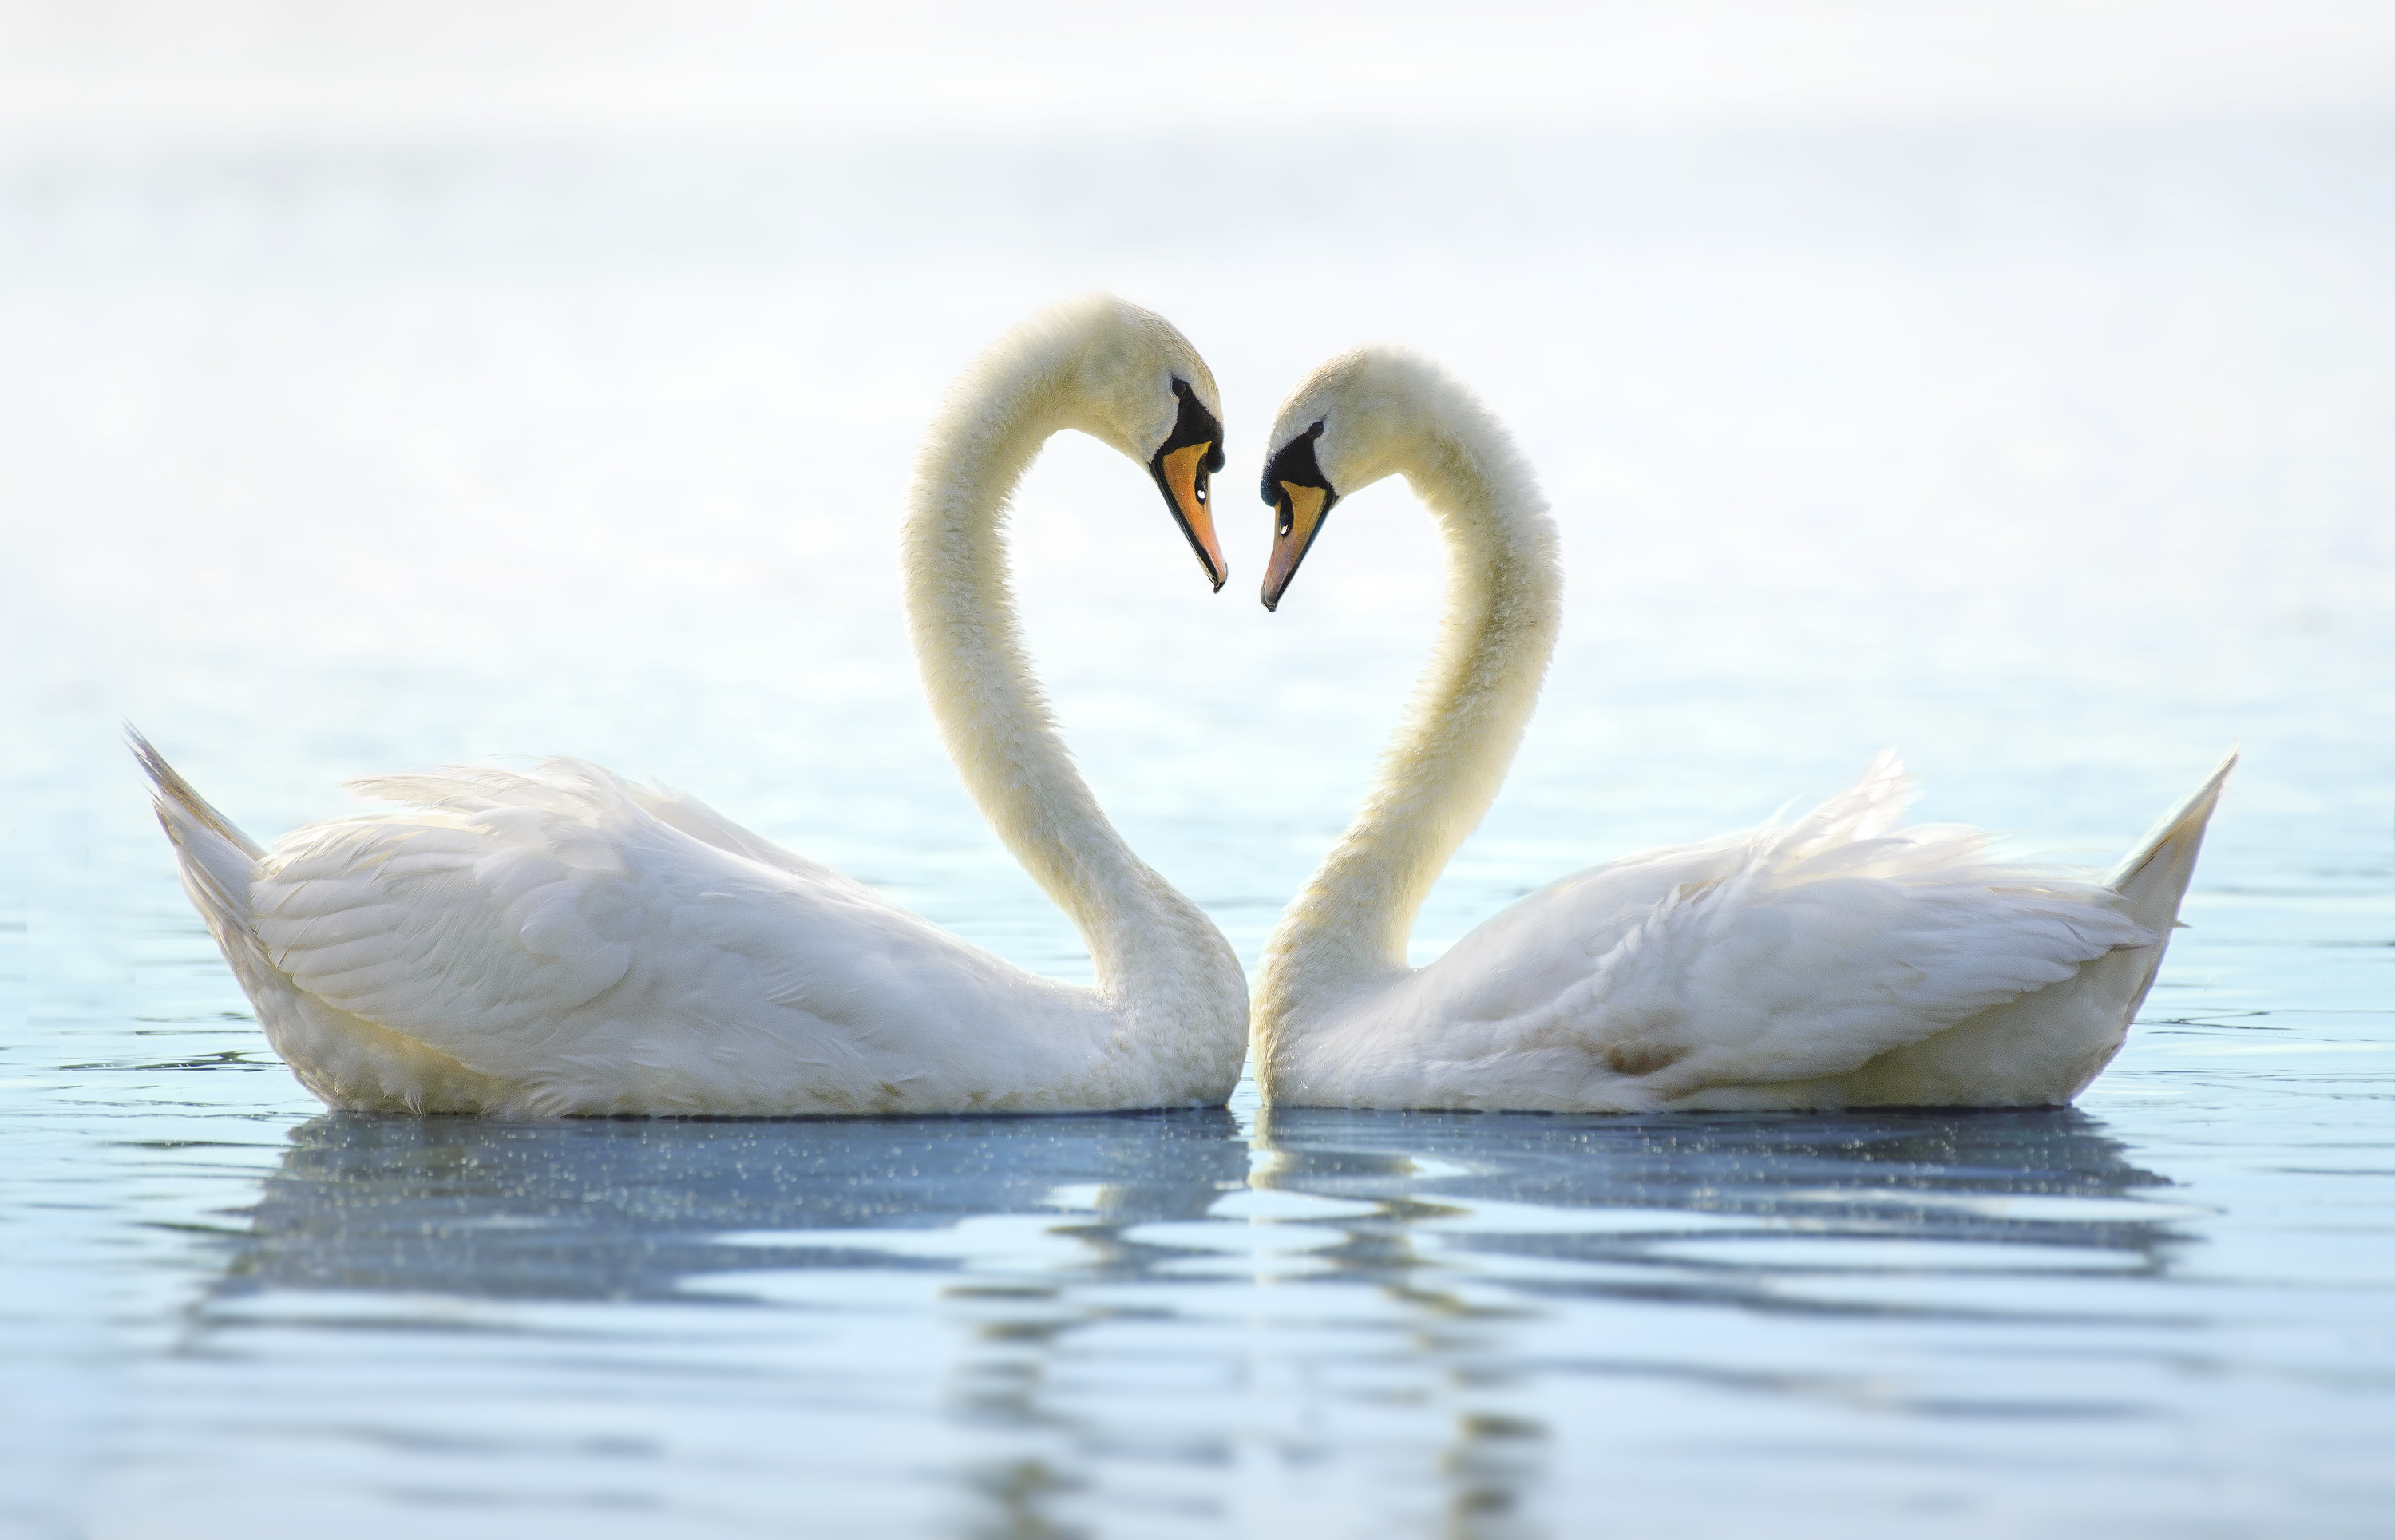 Two swans facing each other with their necks forming a heart